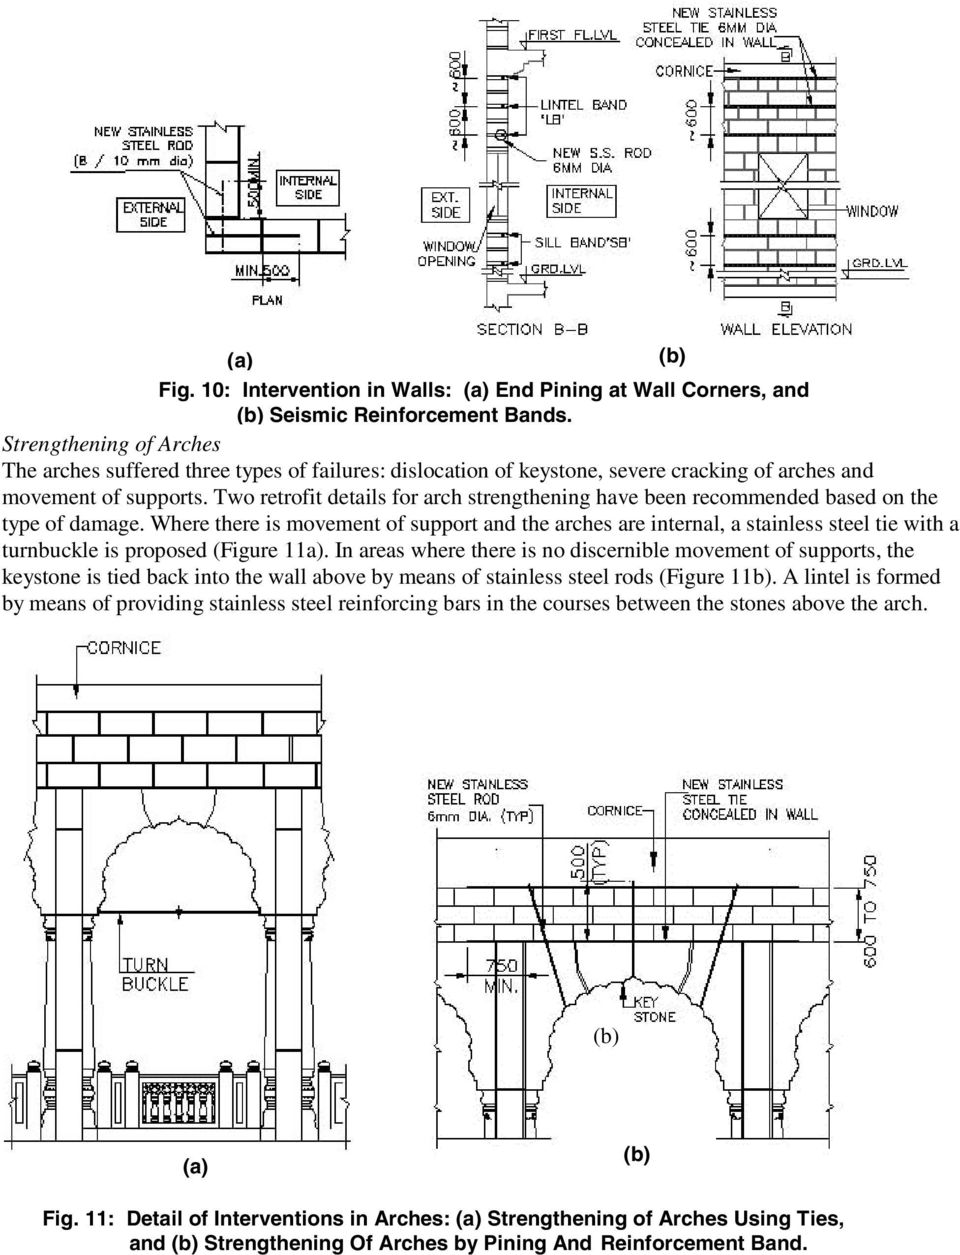 Two retrofit details for arch strengthening have been recommended based on the type of damage.